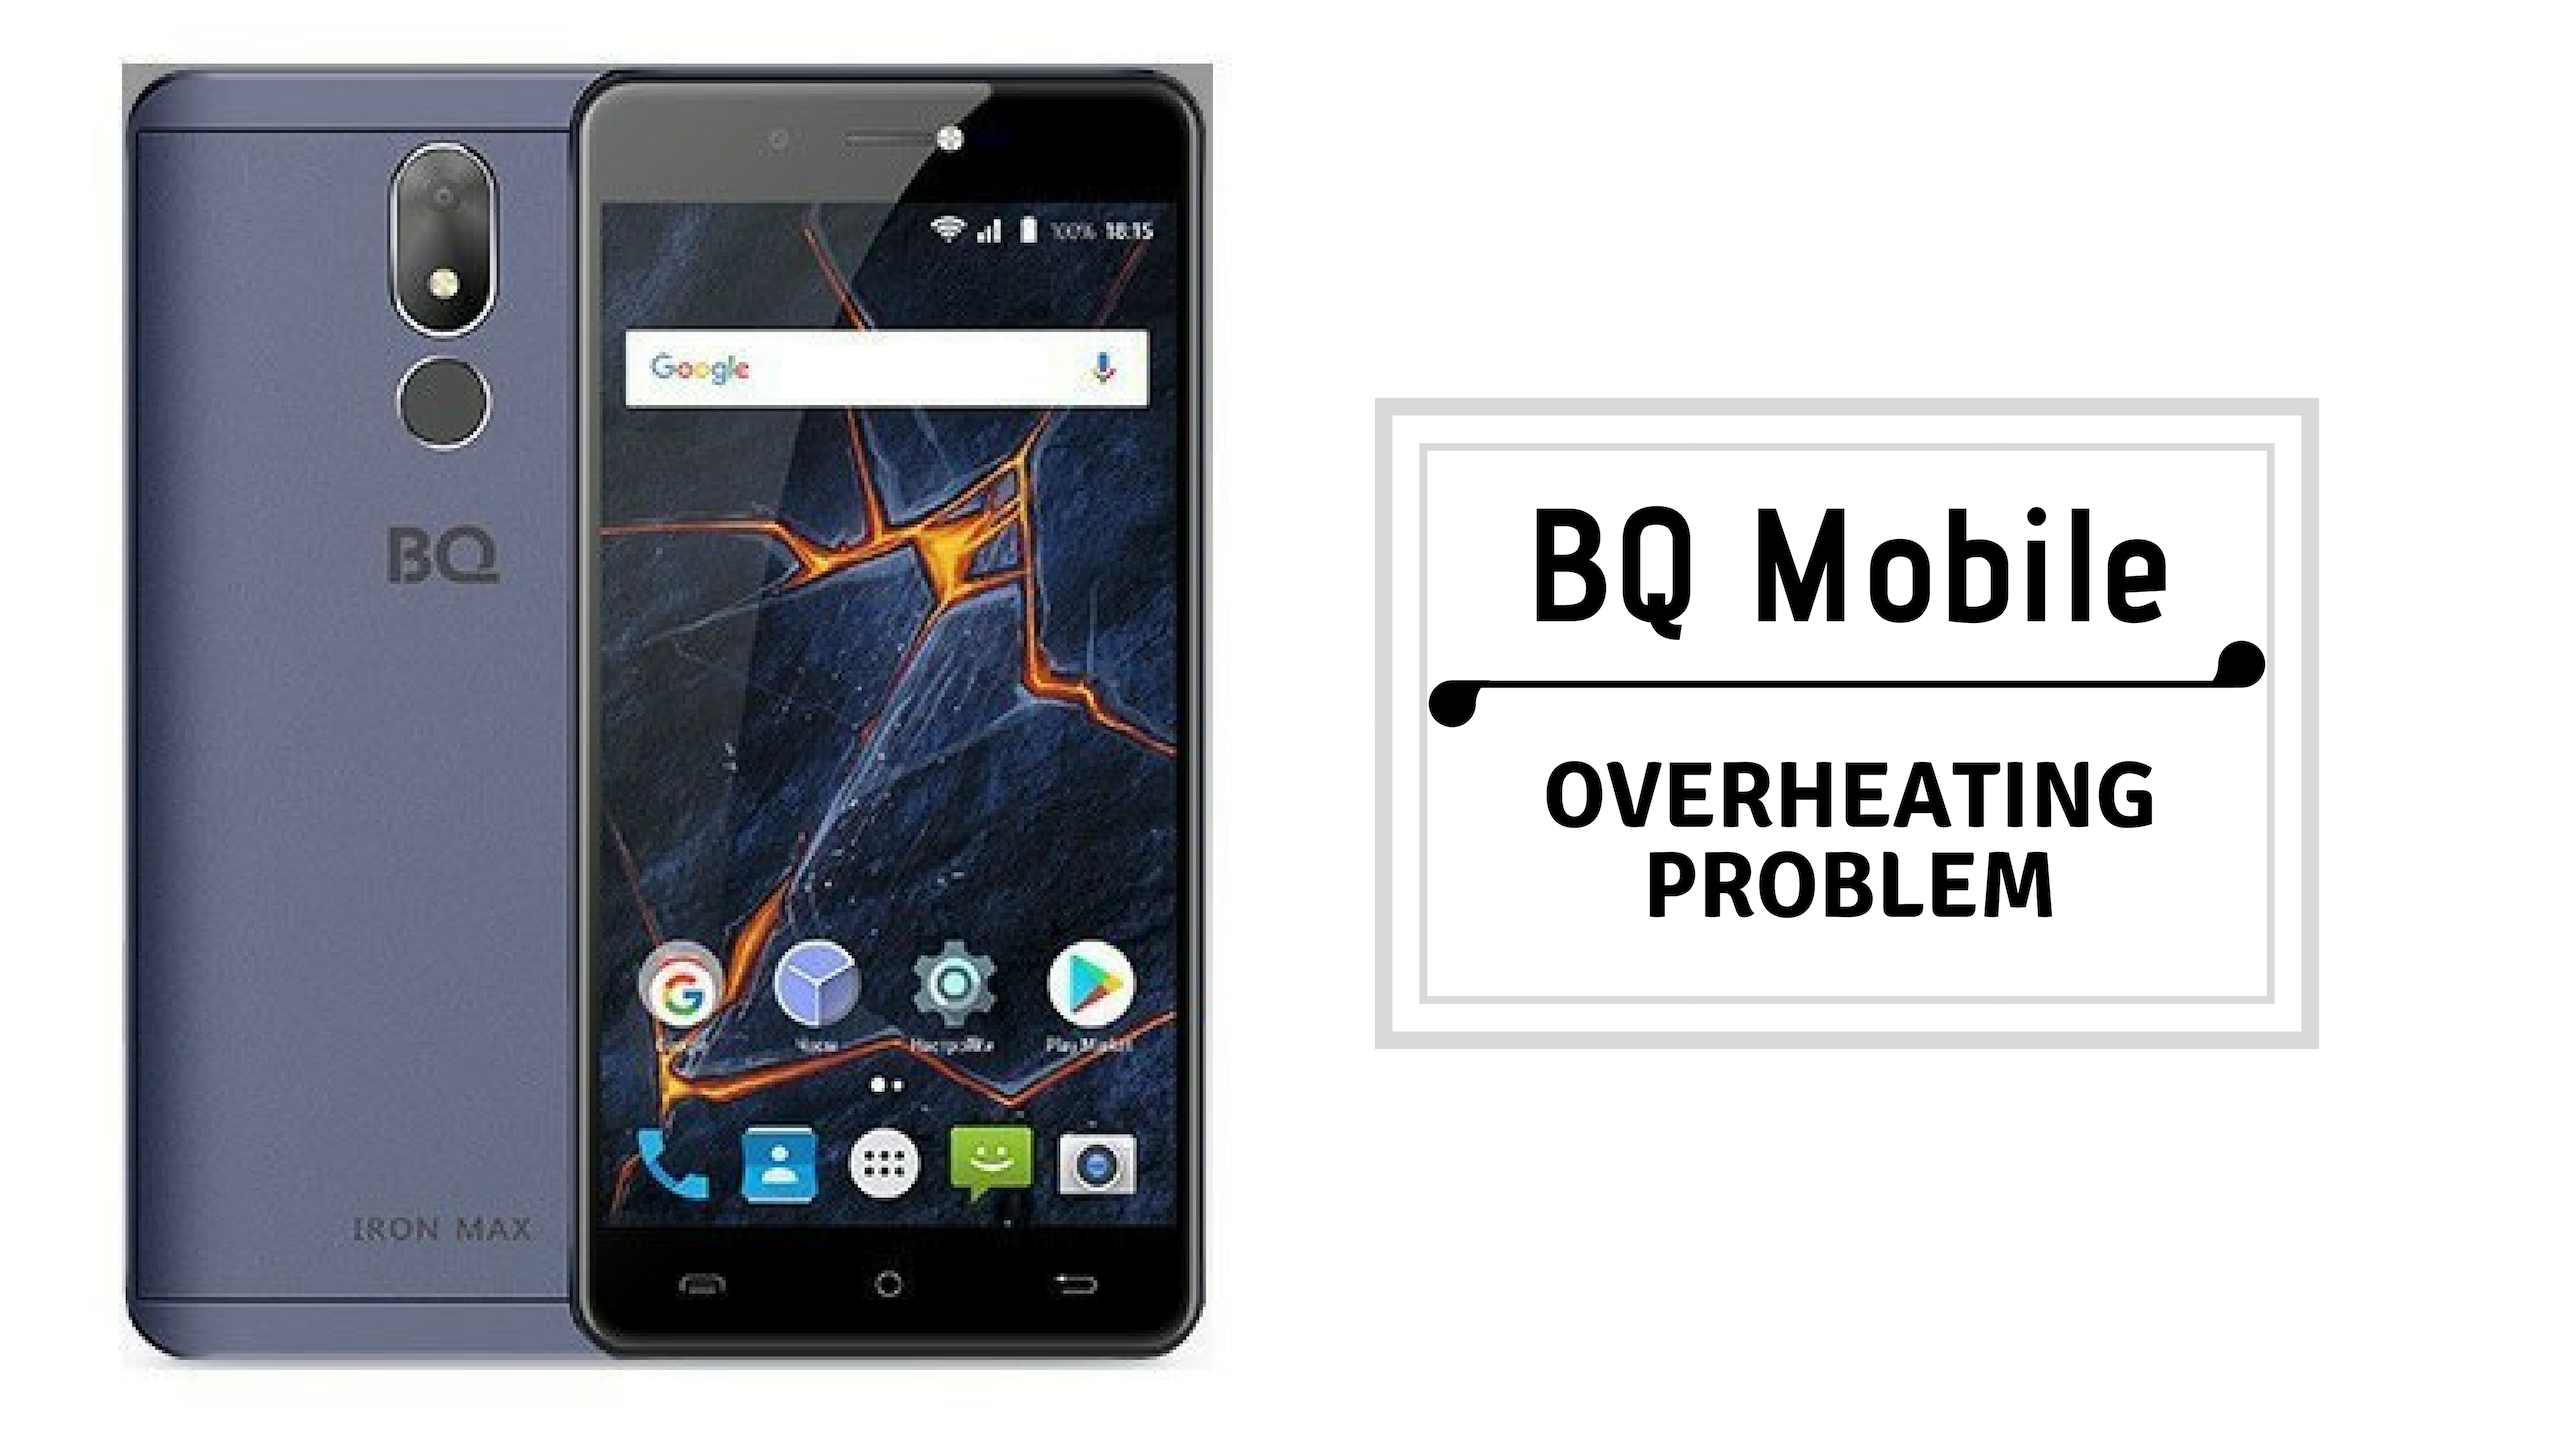 How To Fix BQ Mobile Overheating Problem - Troubleshooting Fix & Tips